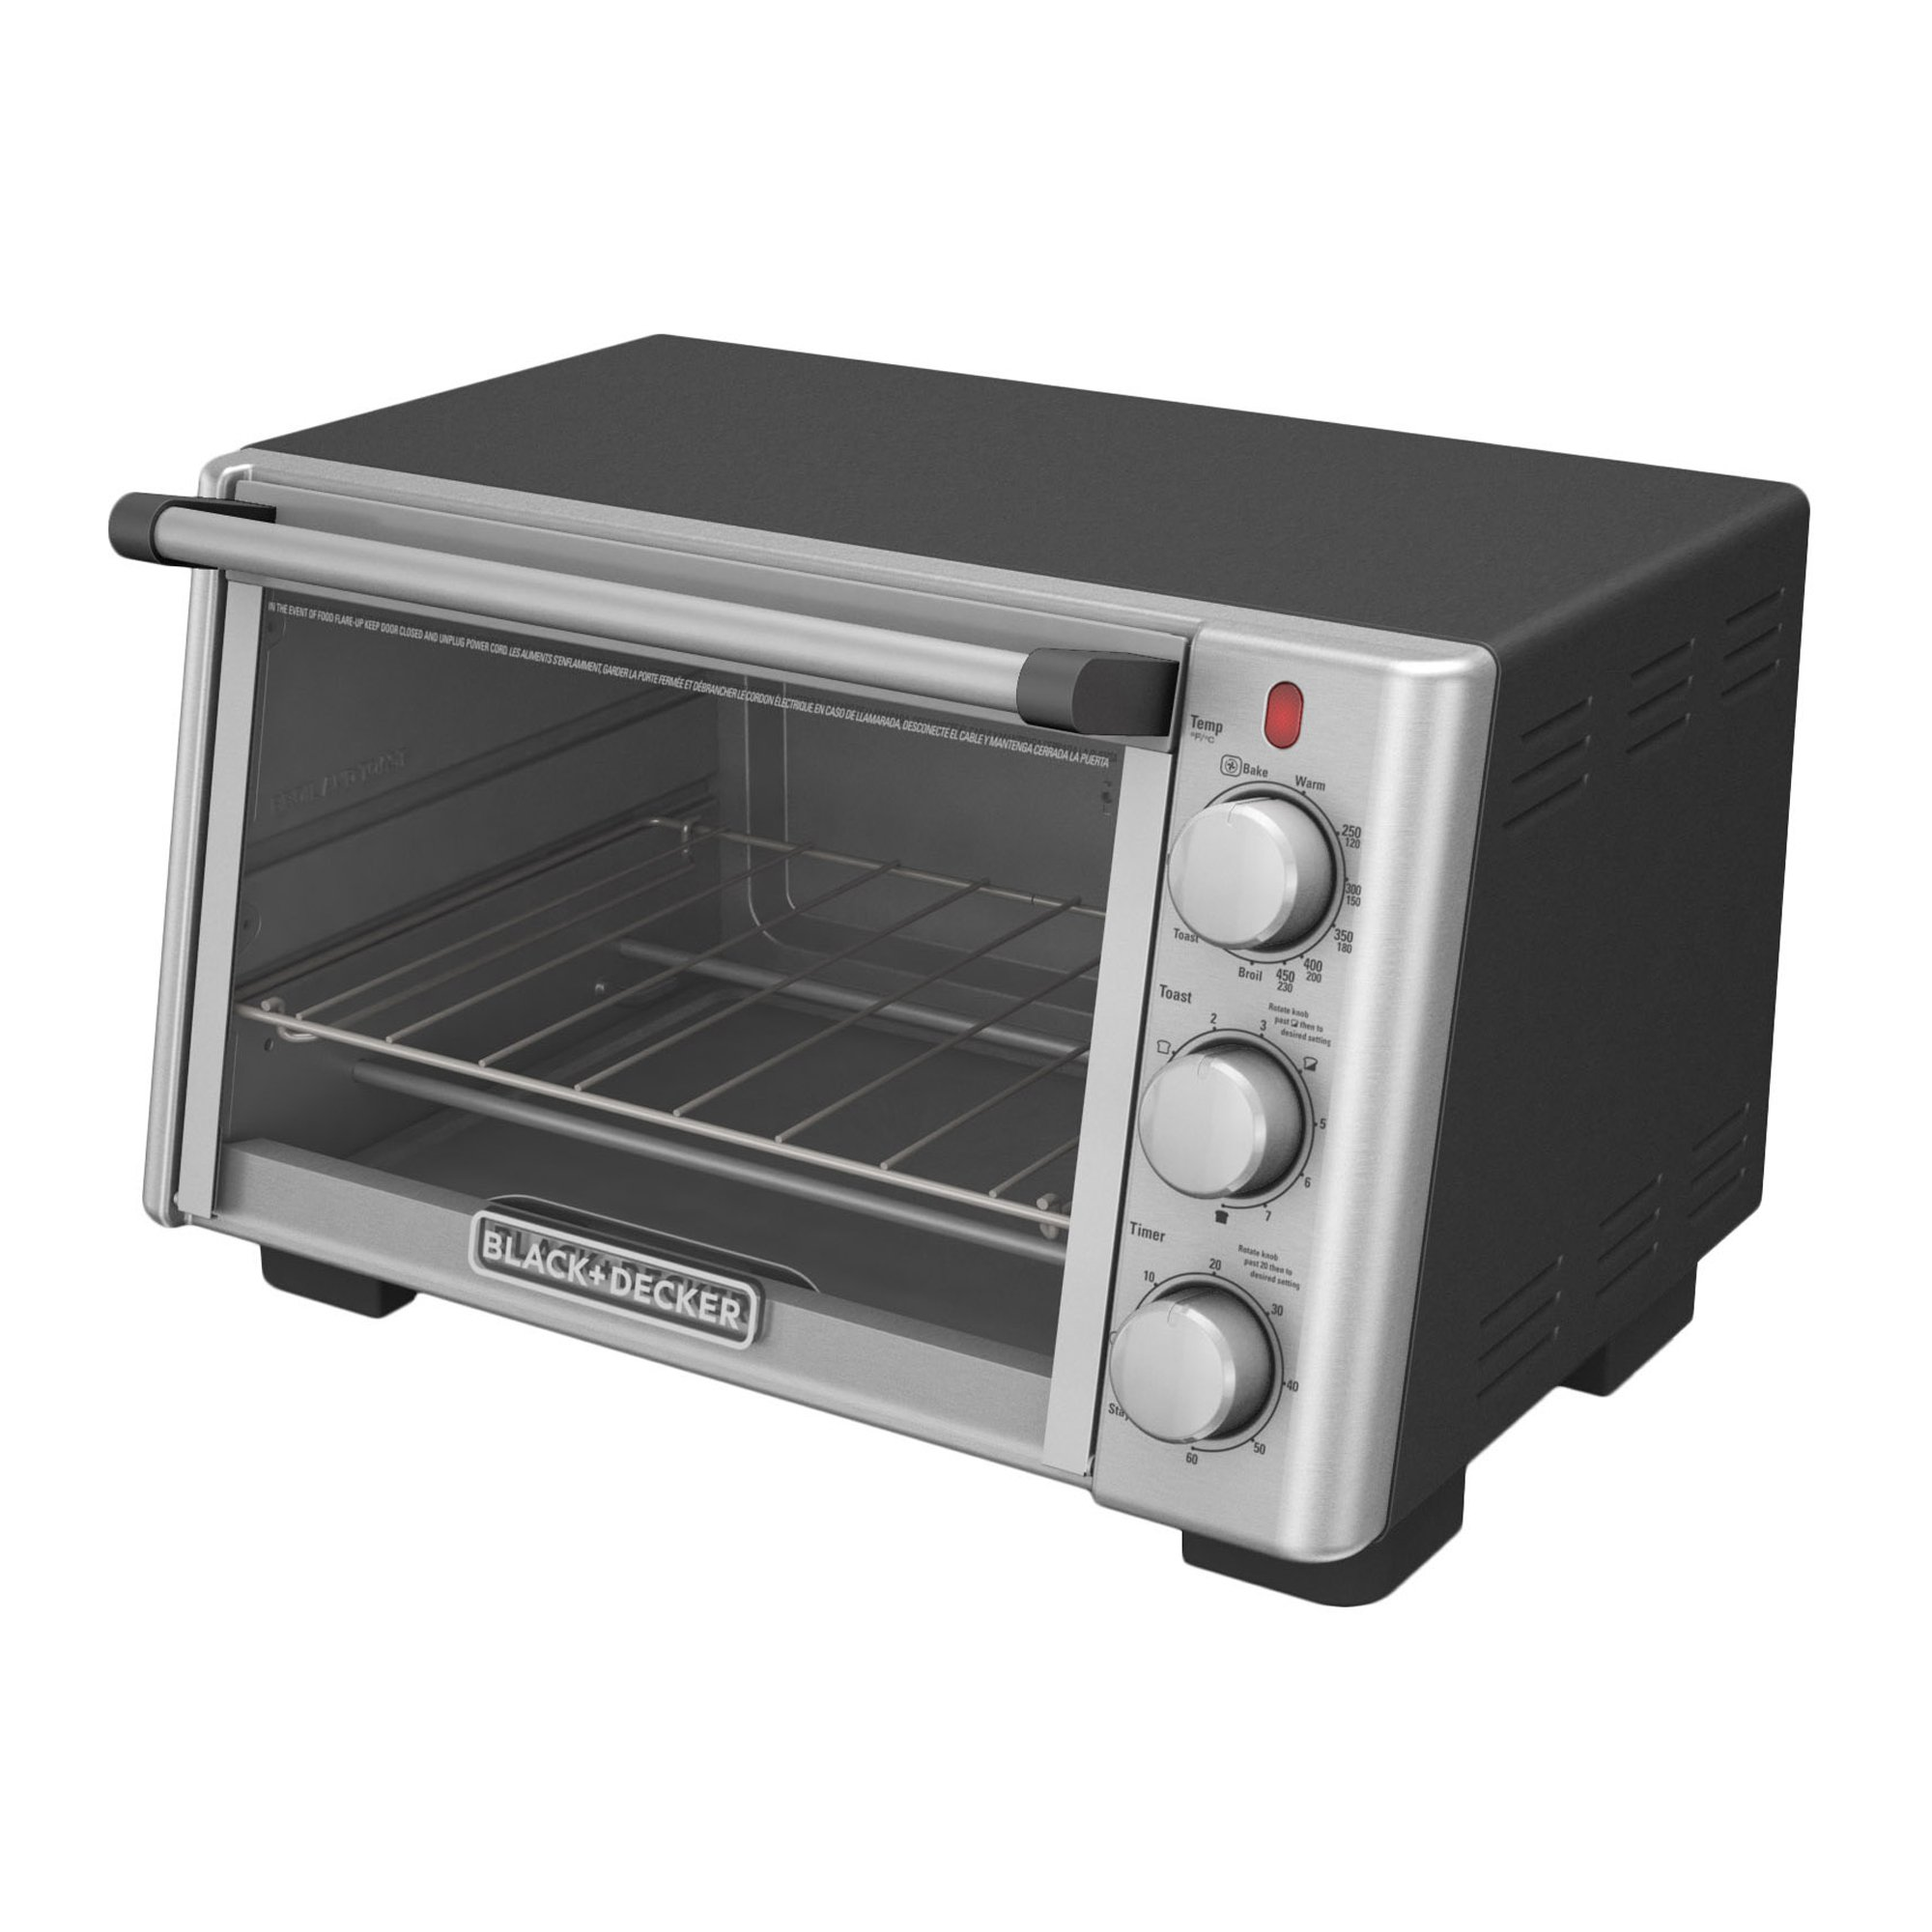 BLACK+DECKER 6-Slice Convection Countertop Toaster Oven, Stainless Steel/Black, TO2050S by BLACK+DECKER (Image #8)